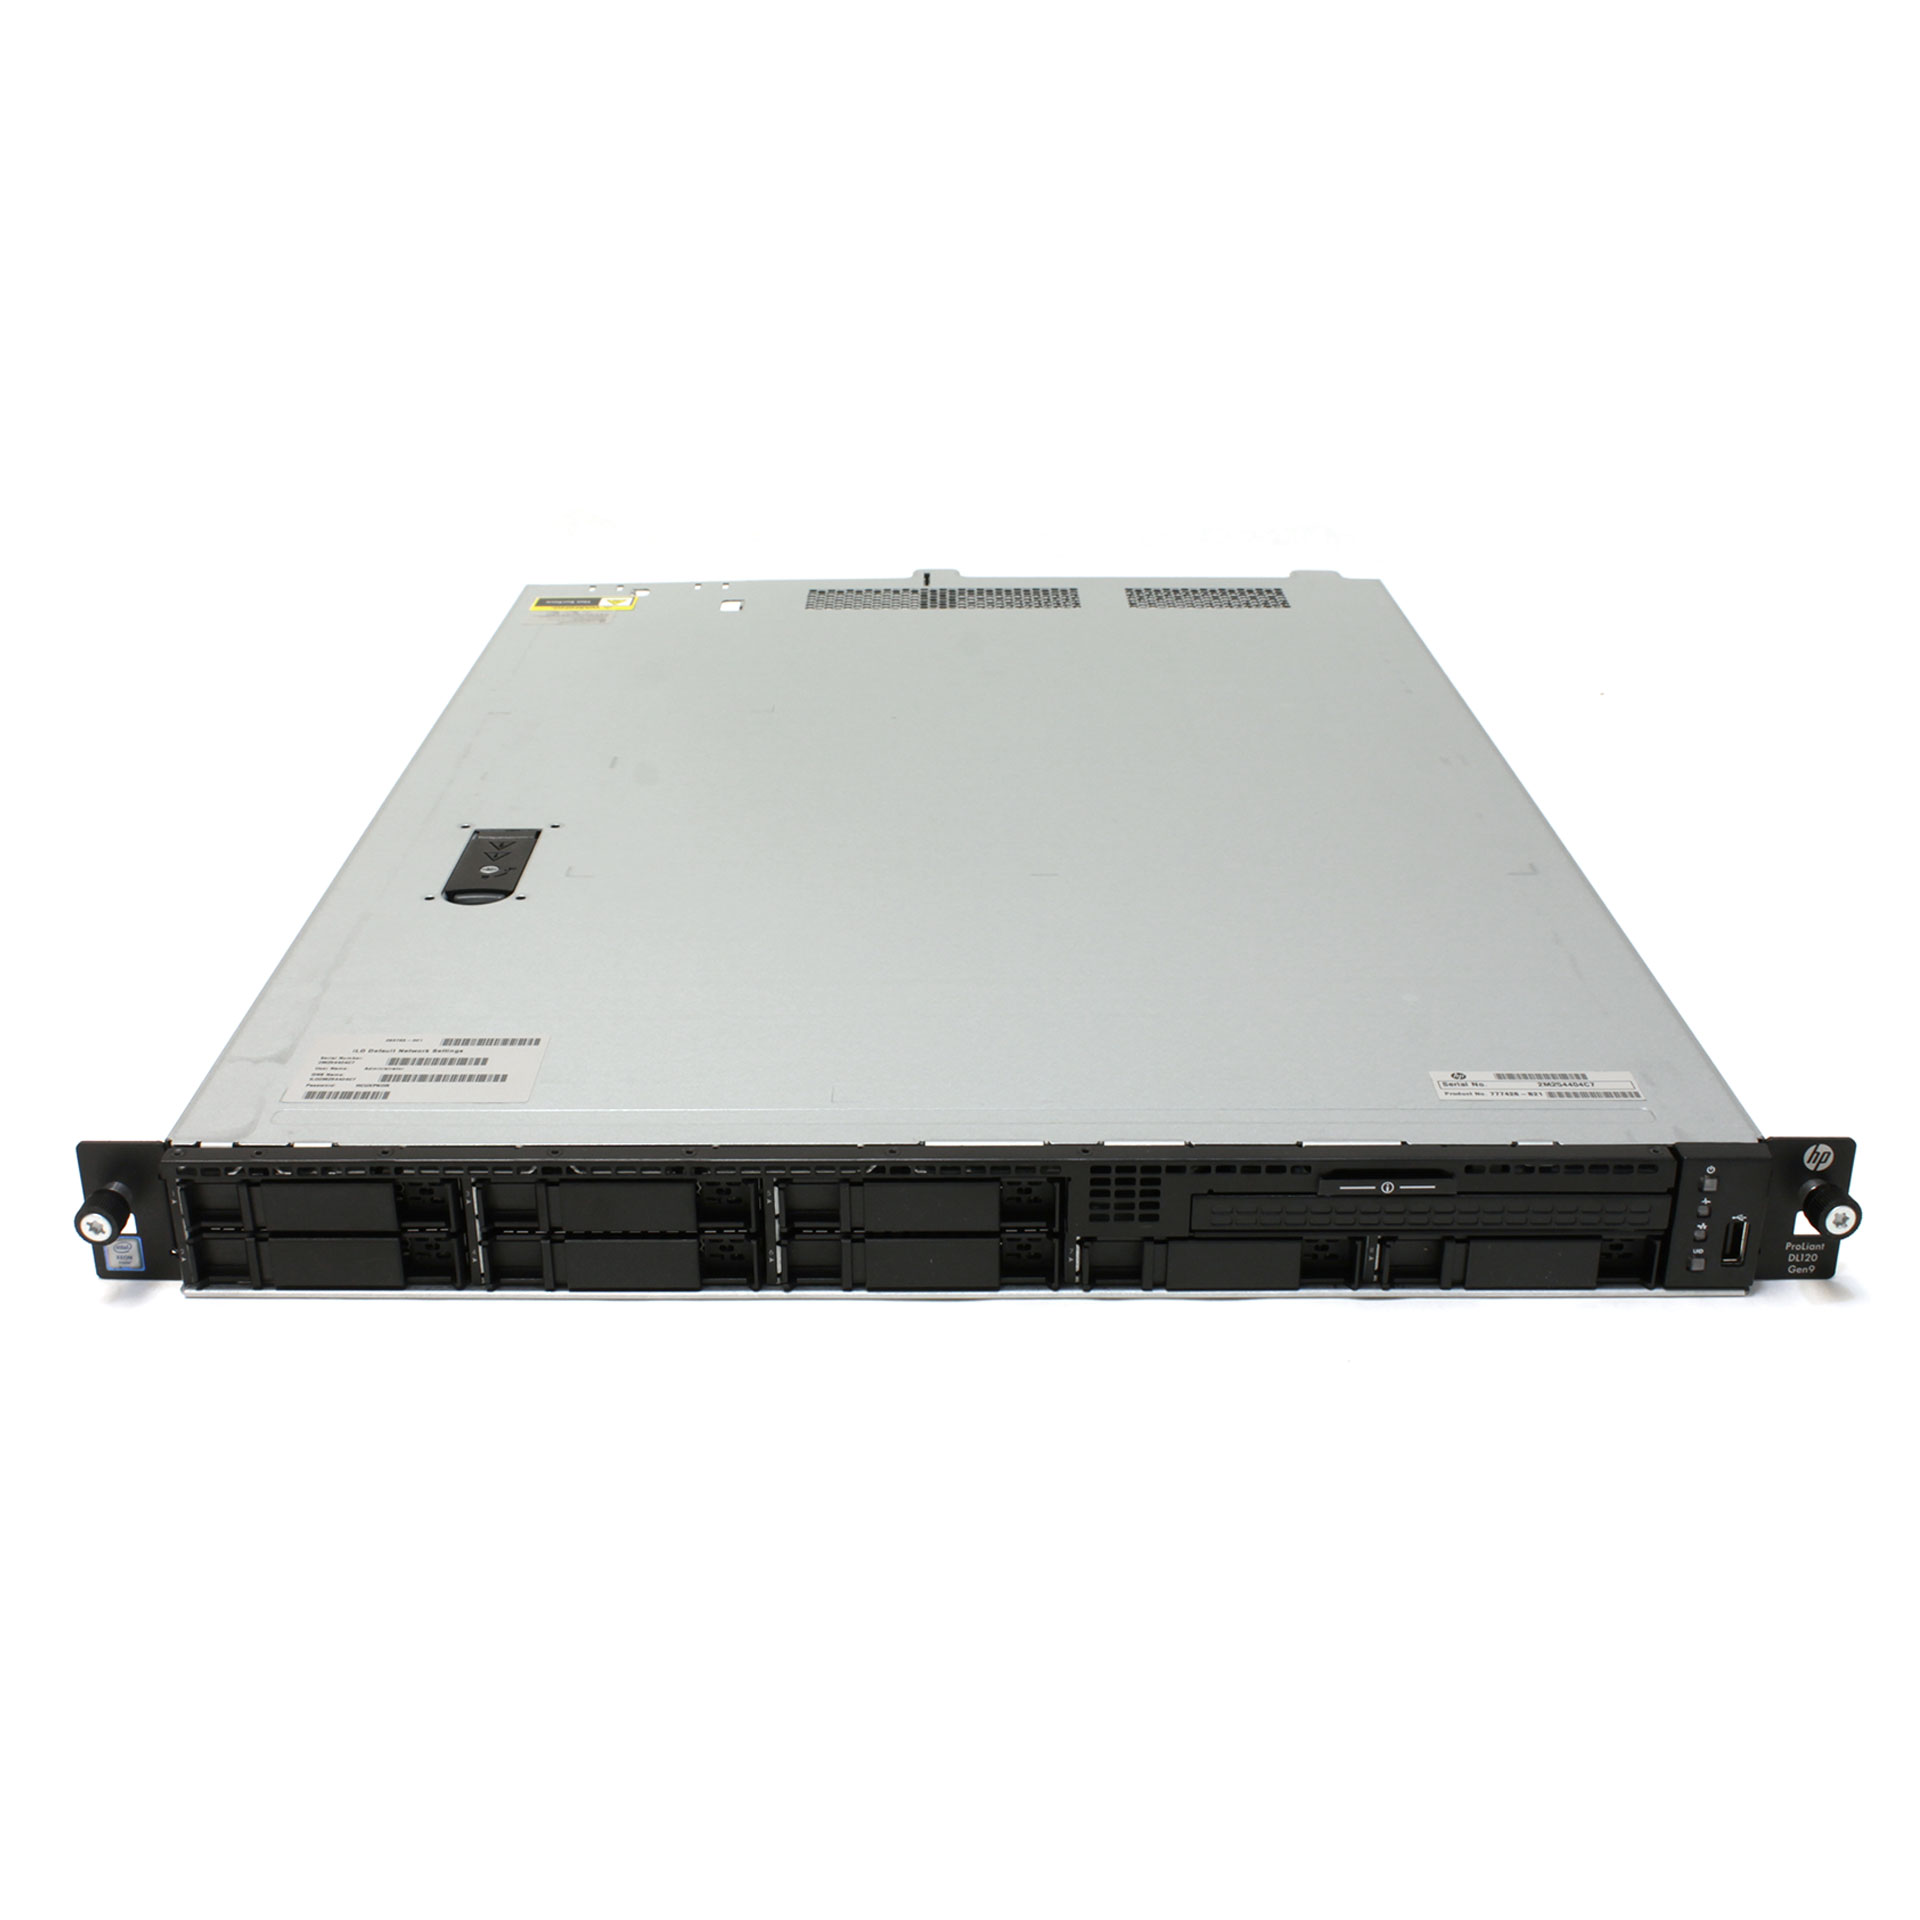 "HPE ProLiant DL120 Gen9 No CPU/RAM/HDD/PSU 1U 2.5"" 777426-B21"